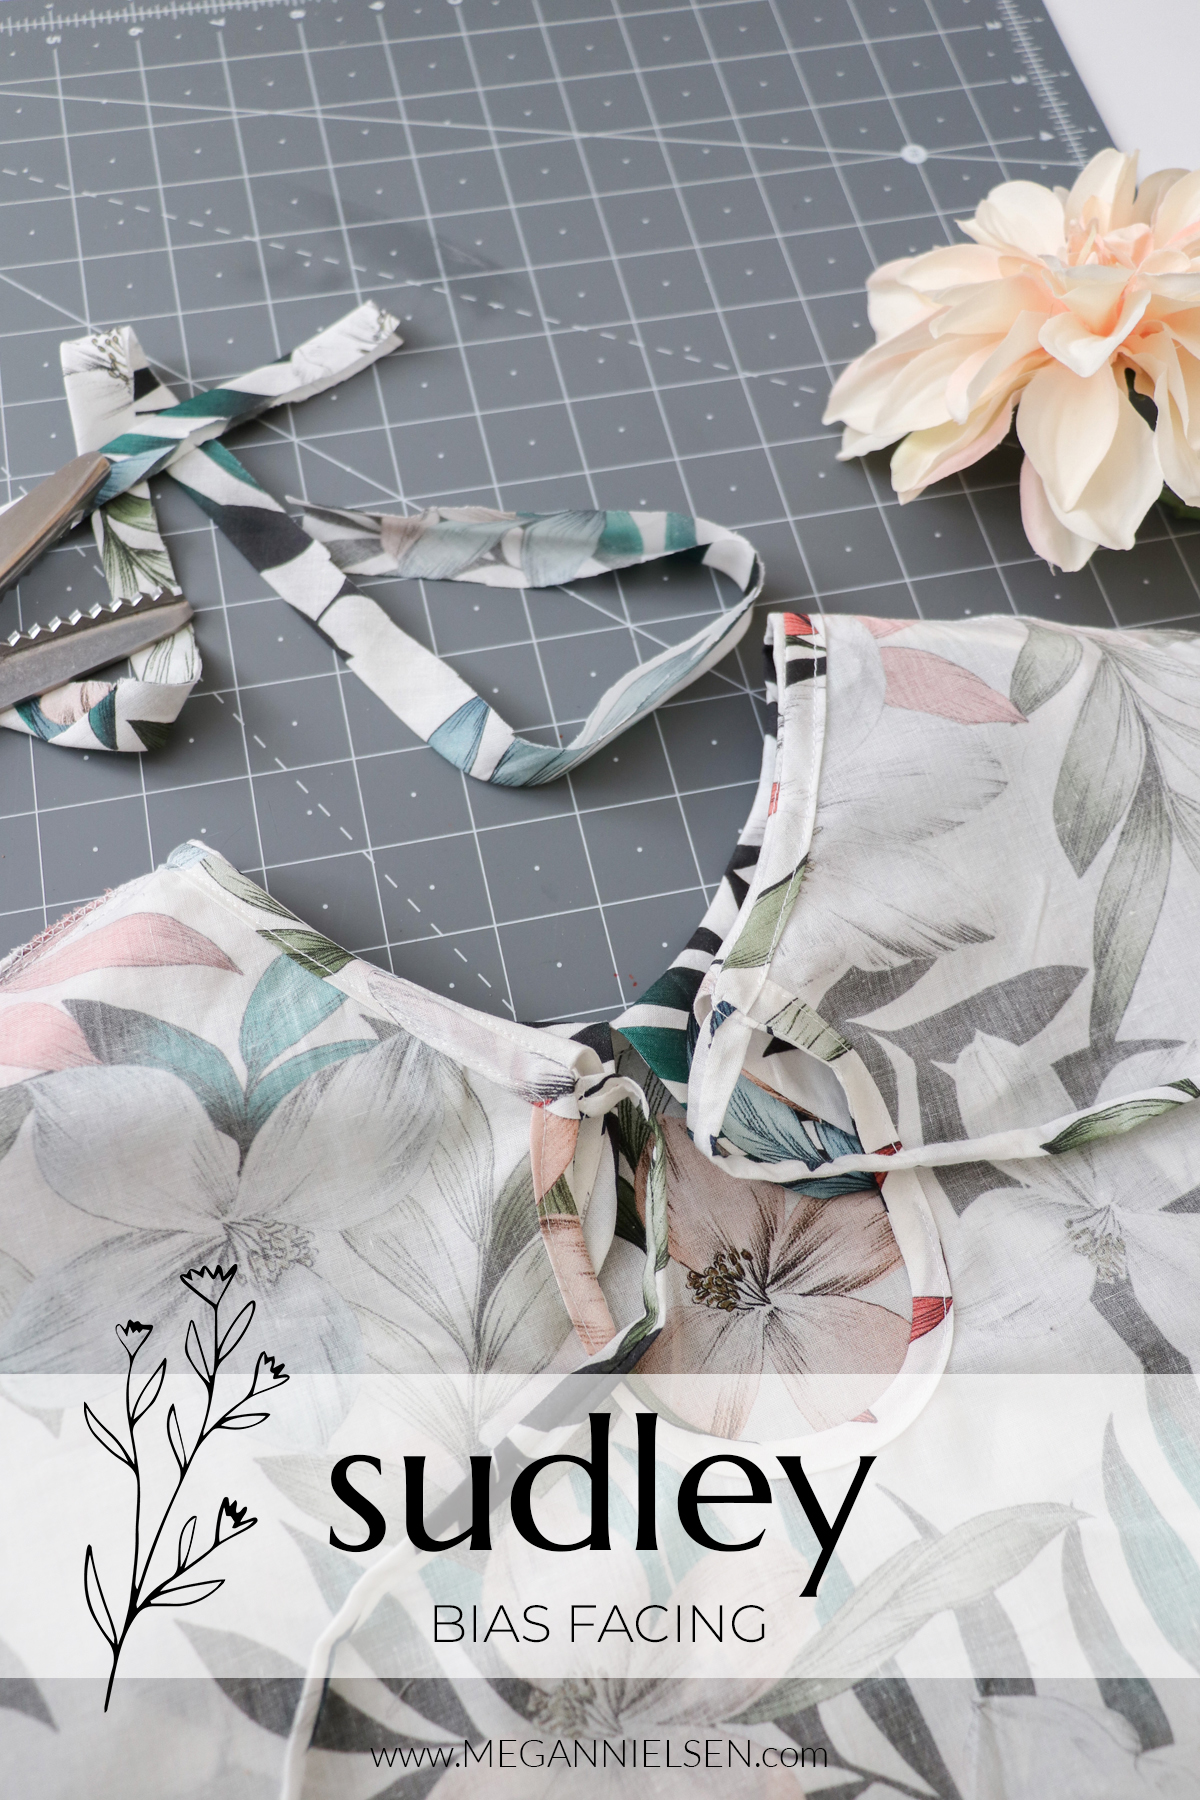 Sudley sewalong attaching the bias facing to the Sudley dress and top